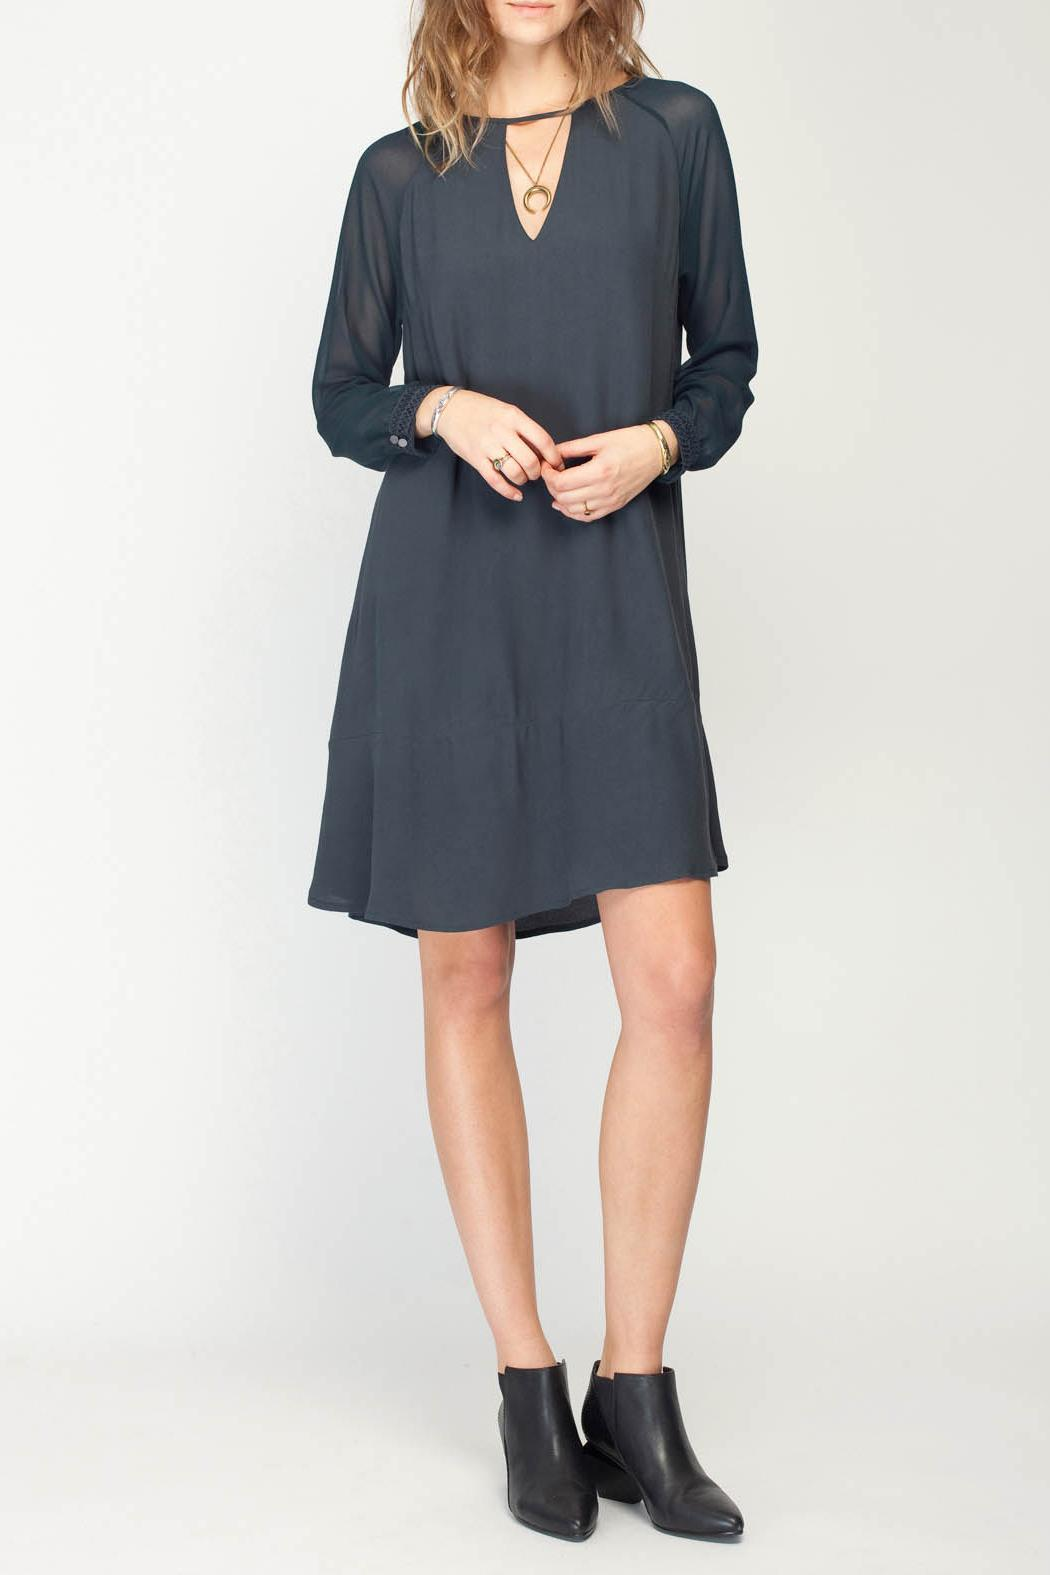 Gentle Fawn Senses Dress - Front Cropped Image